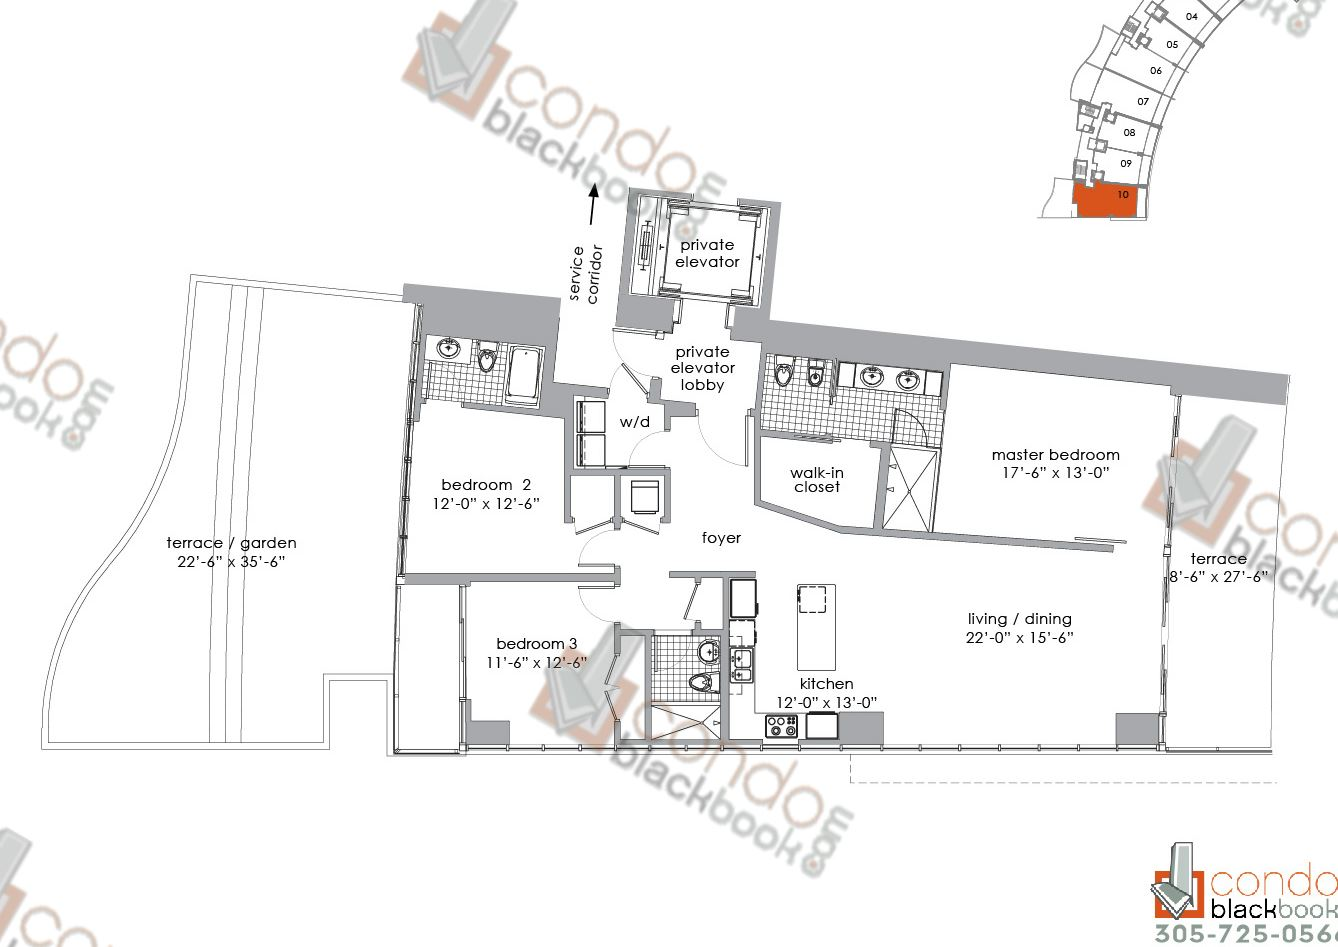 Floor plan for Paramount Bay Edgewater Miami, model RESIDENCE 610, line 10, 3/3 bedrooms, 1,818 sq ft